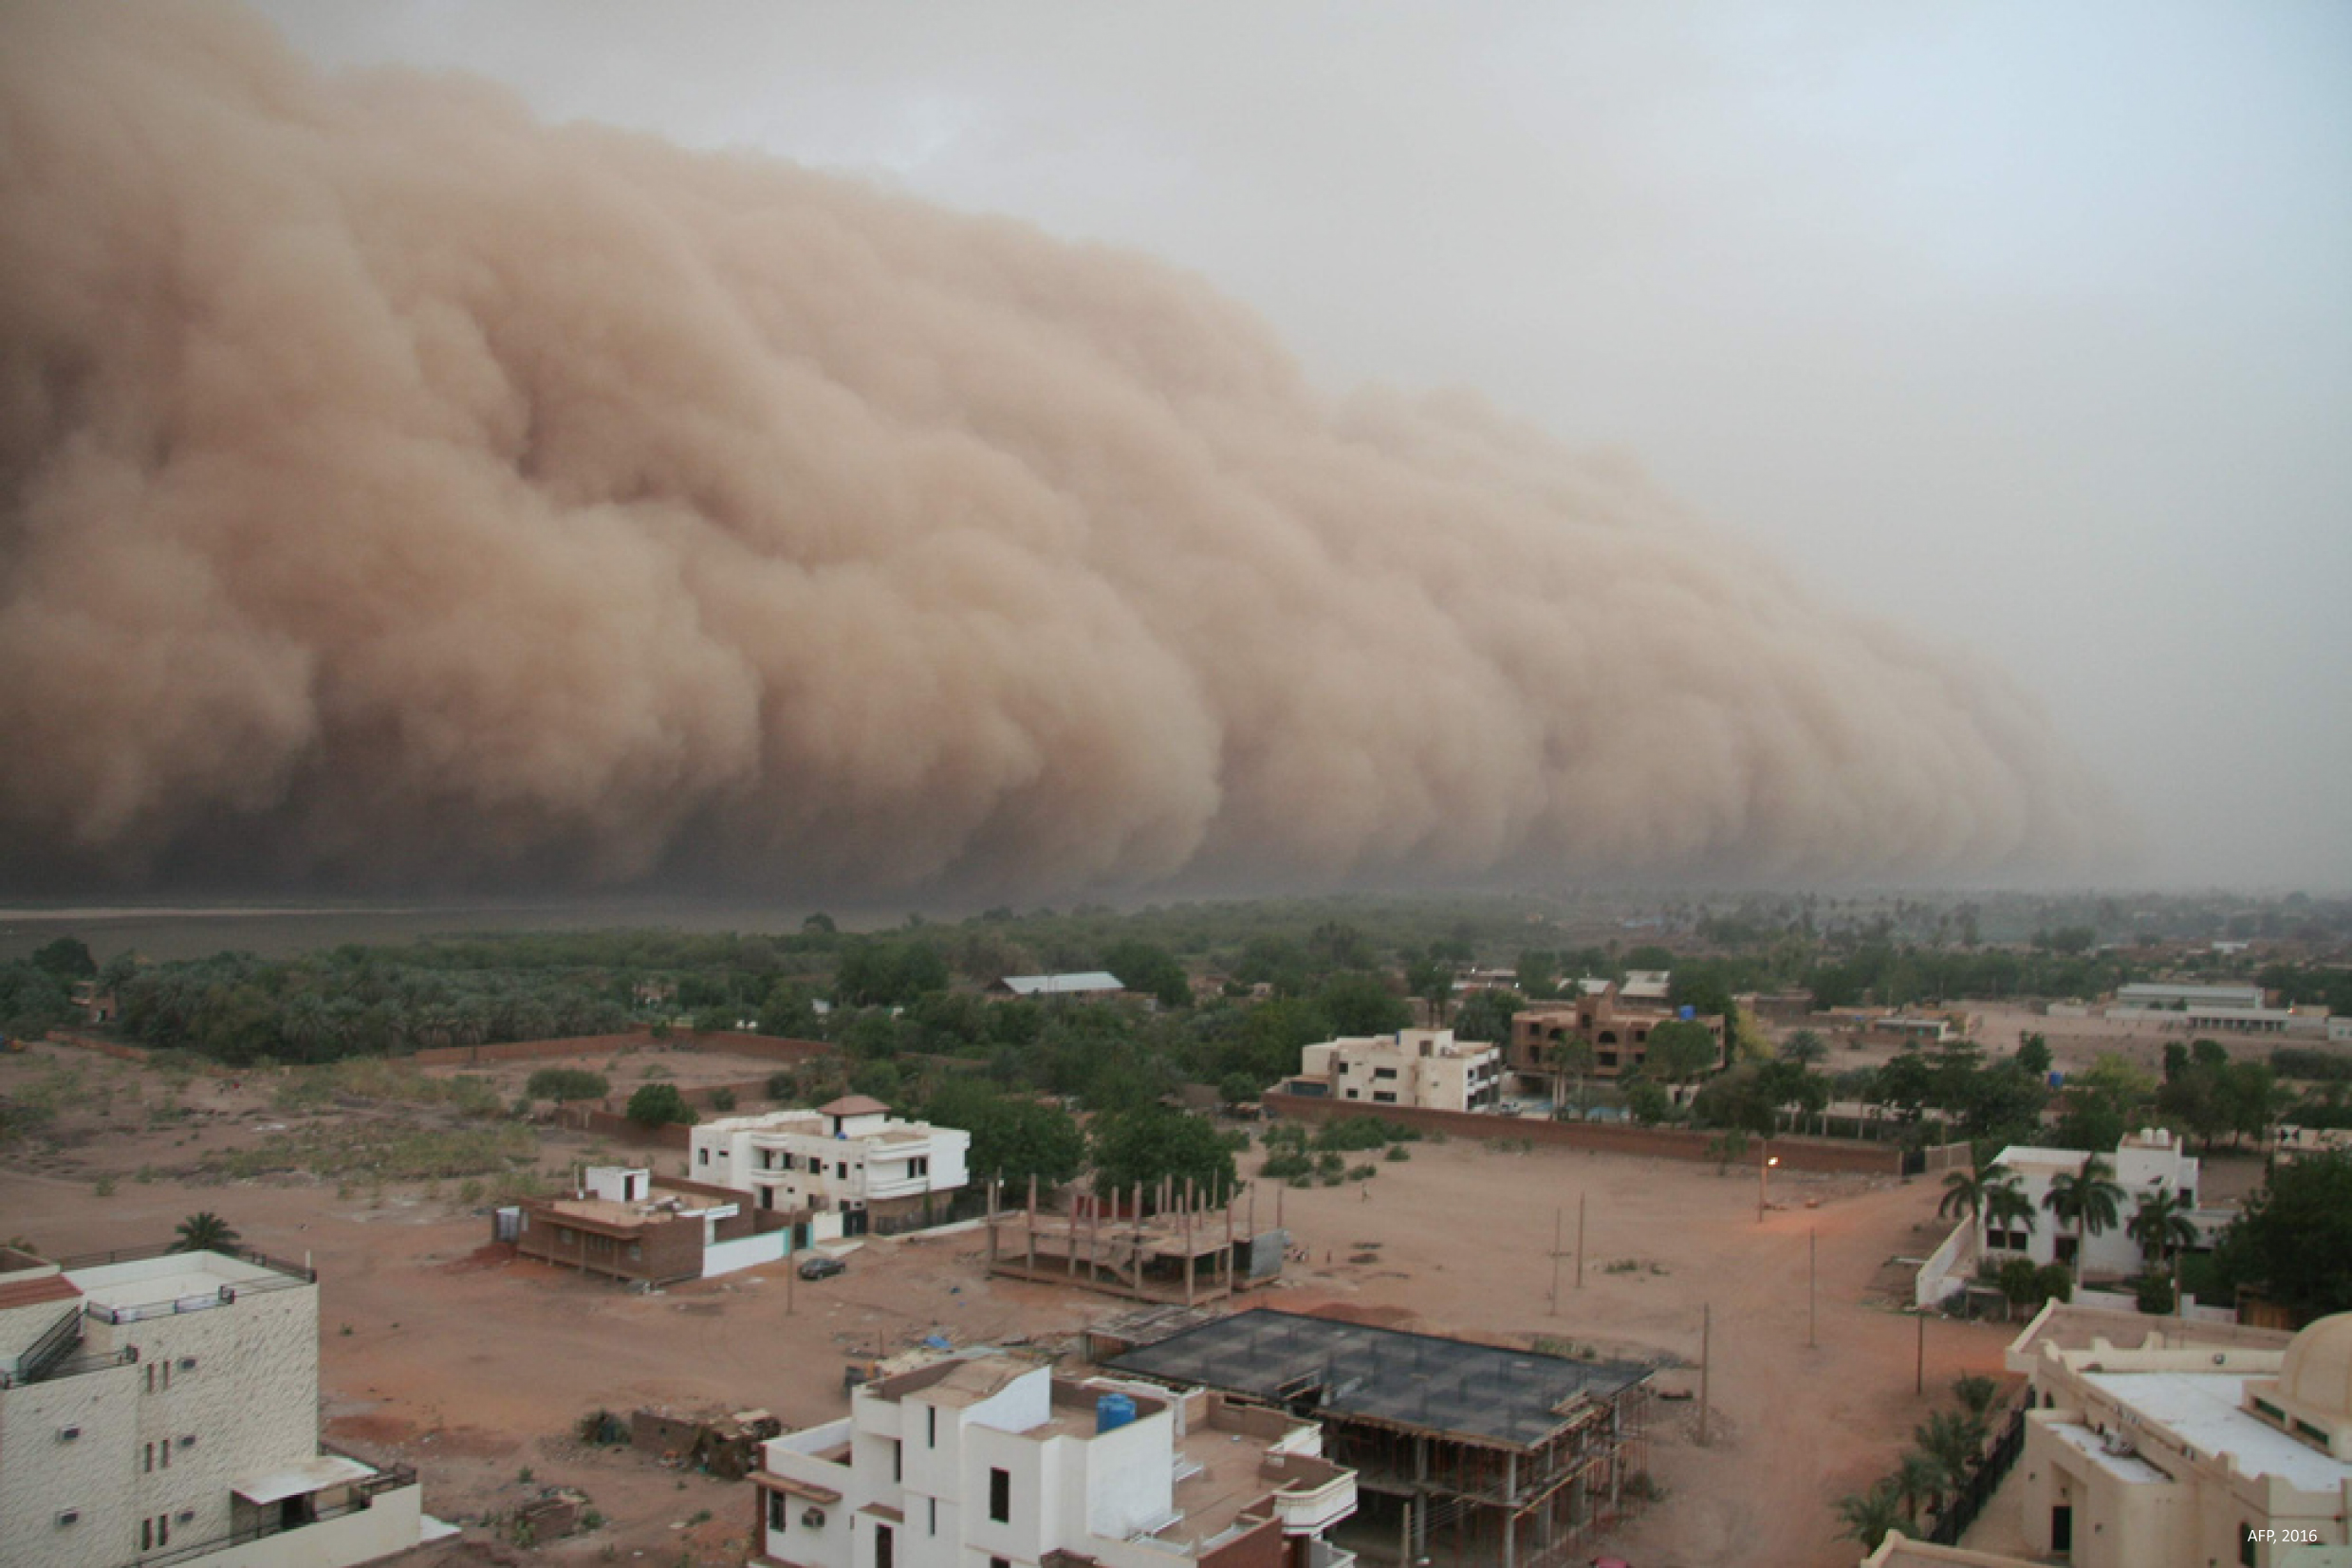 Some of the factors driving « economic » migrations: In many areas such as South Sudan, global warming expands desertification and makes sand storms more frequent.